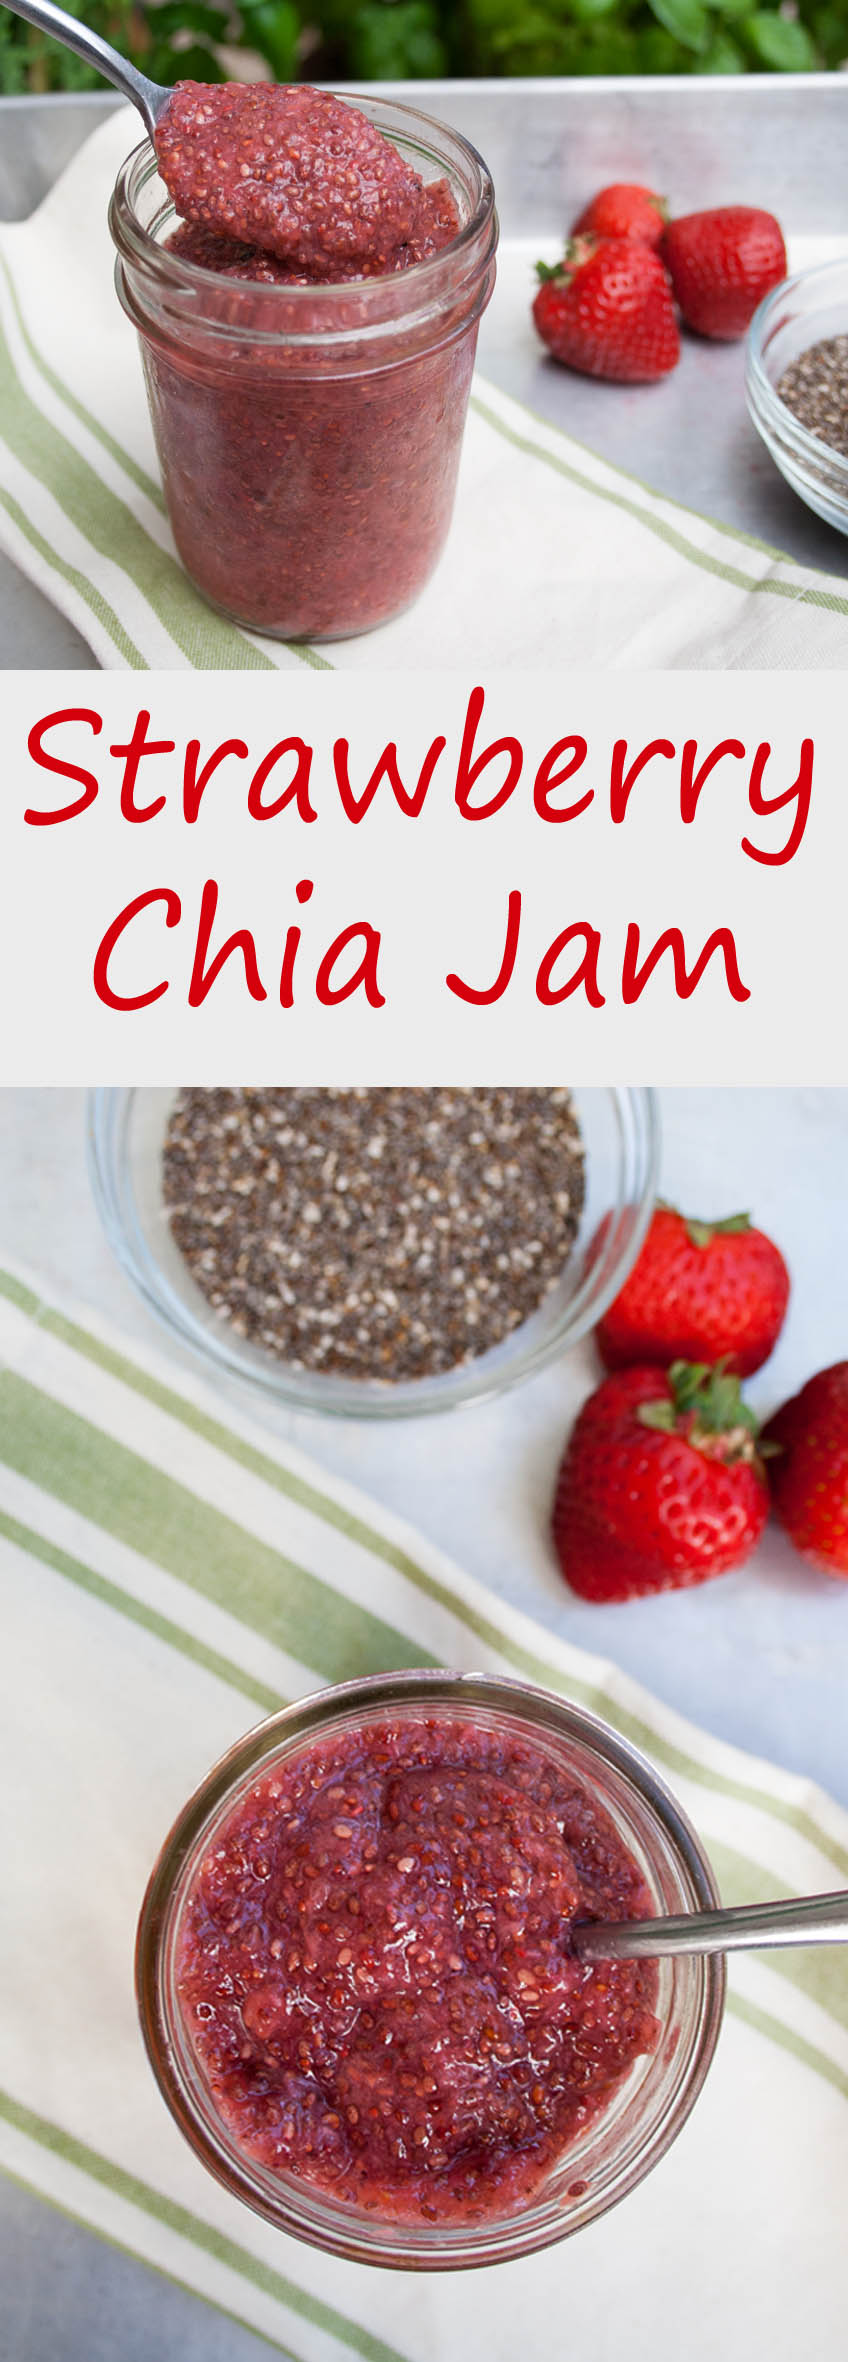 Strawberry Chia Jam collage photo with text